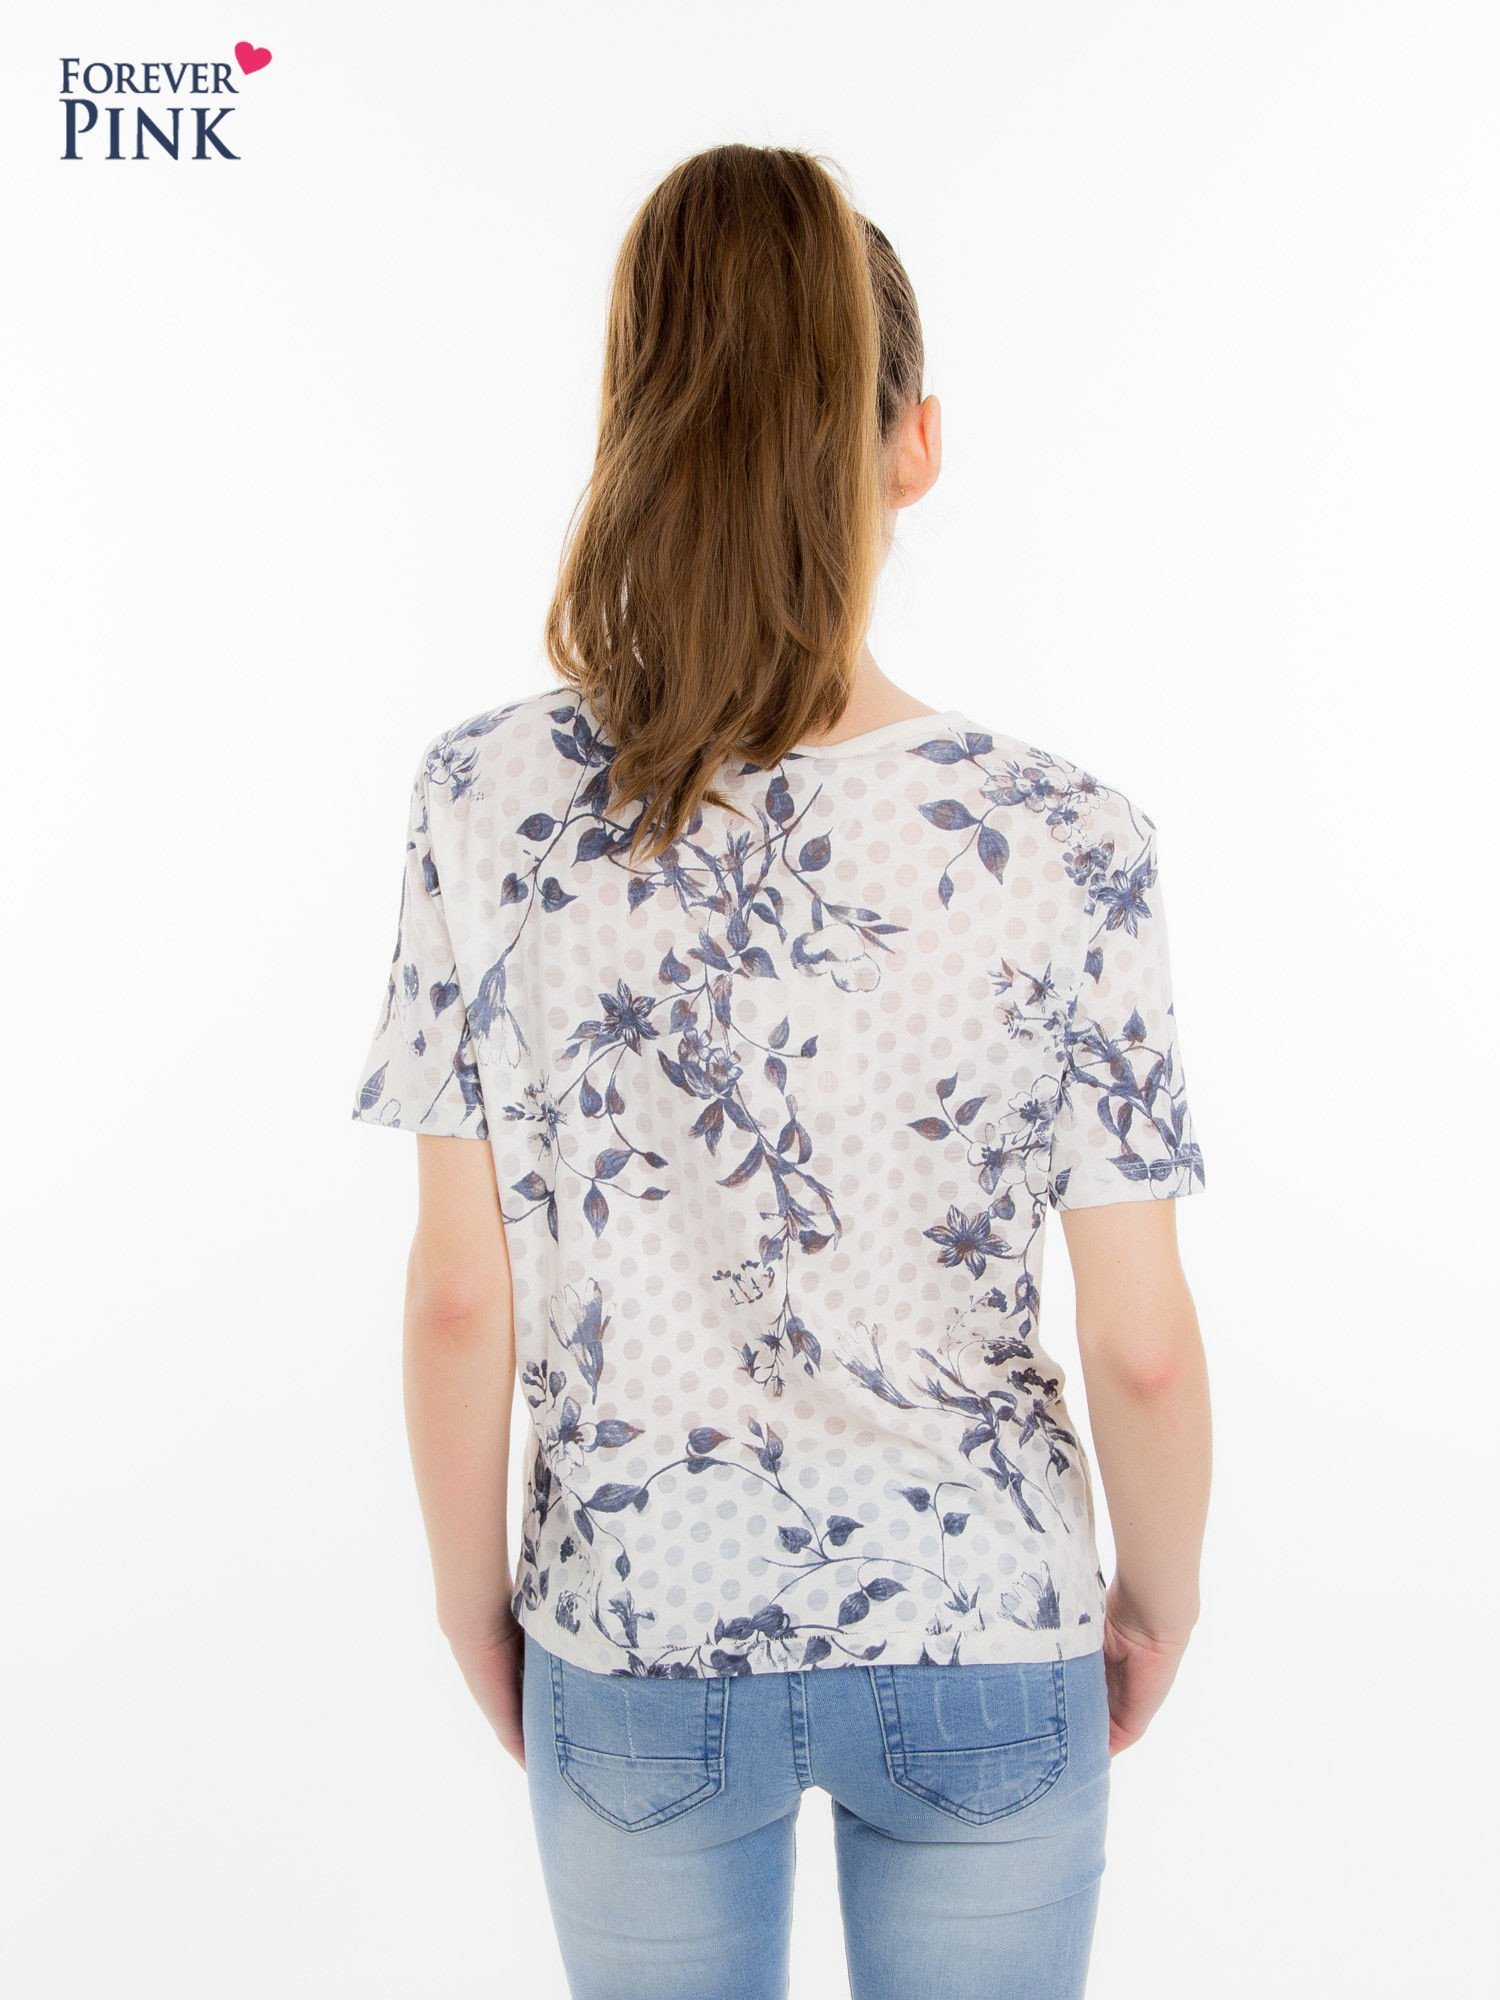 Biały t-shirt z all over floral printem                                  zdj.                                  4